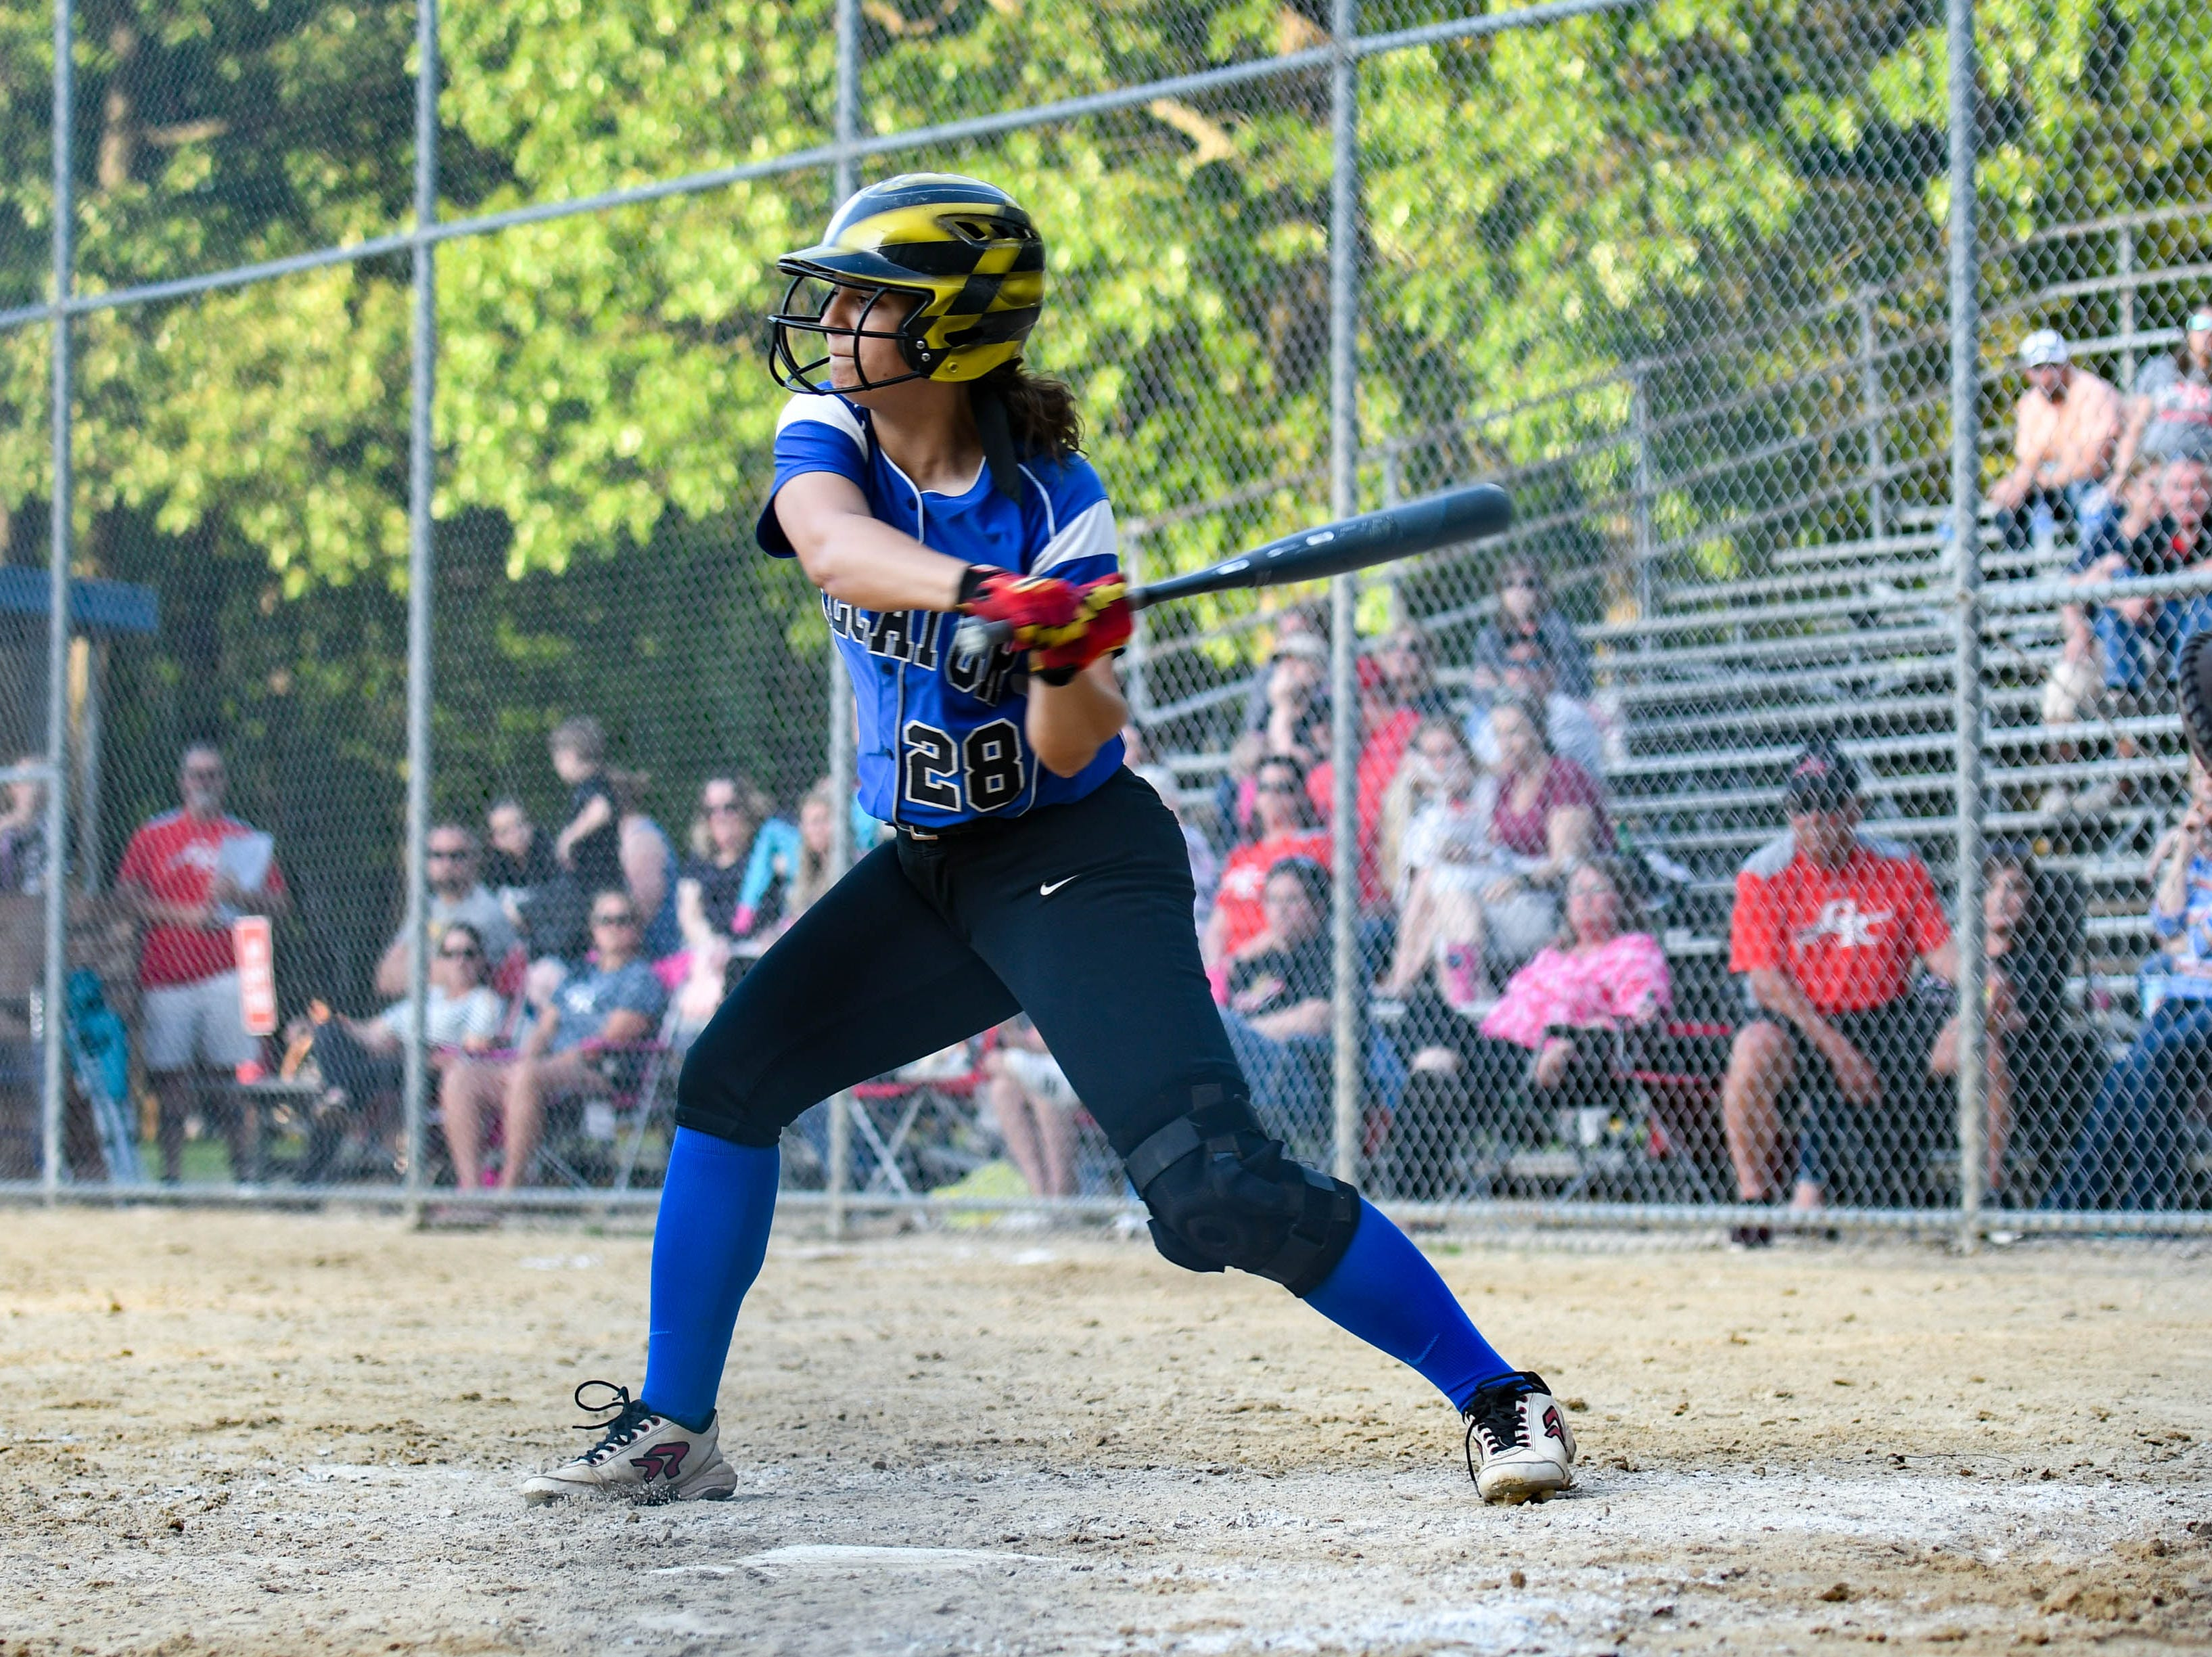 Decatur's Sierra Eisemann (28) bats up against Colonel Richardson in the Bayside Softball Championship game on Wednesday, May 8, 2019. Decatur prevailed with a score of 4 to 1.